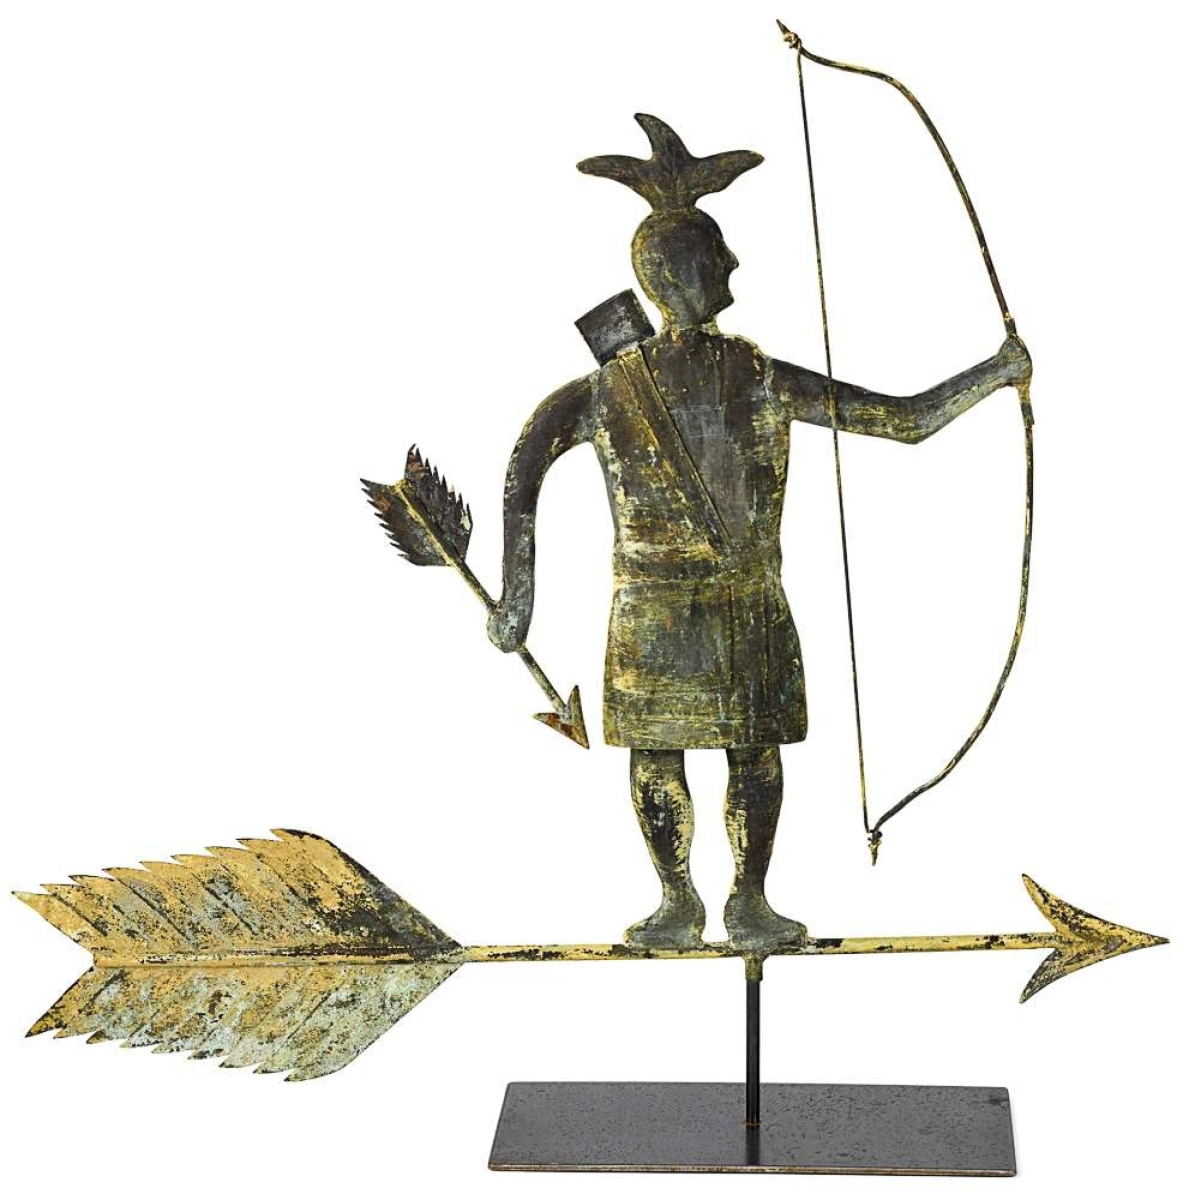 This Nineteenth Century Harris & Company weathervane depicts the Wampanoag sachem Massasoit (circa 1581–1661), who collaborated with the Plymouth Colony elders. Measuring 35 inches tall, the molded copper figure with traces of gilt and verdigris on its weathered surface was the sale's top lot, crossing the block at $20,740 ($18/$25,000).